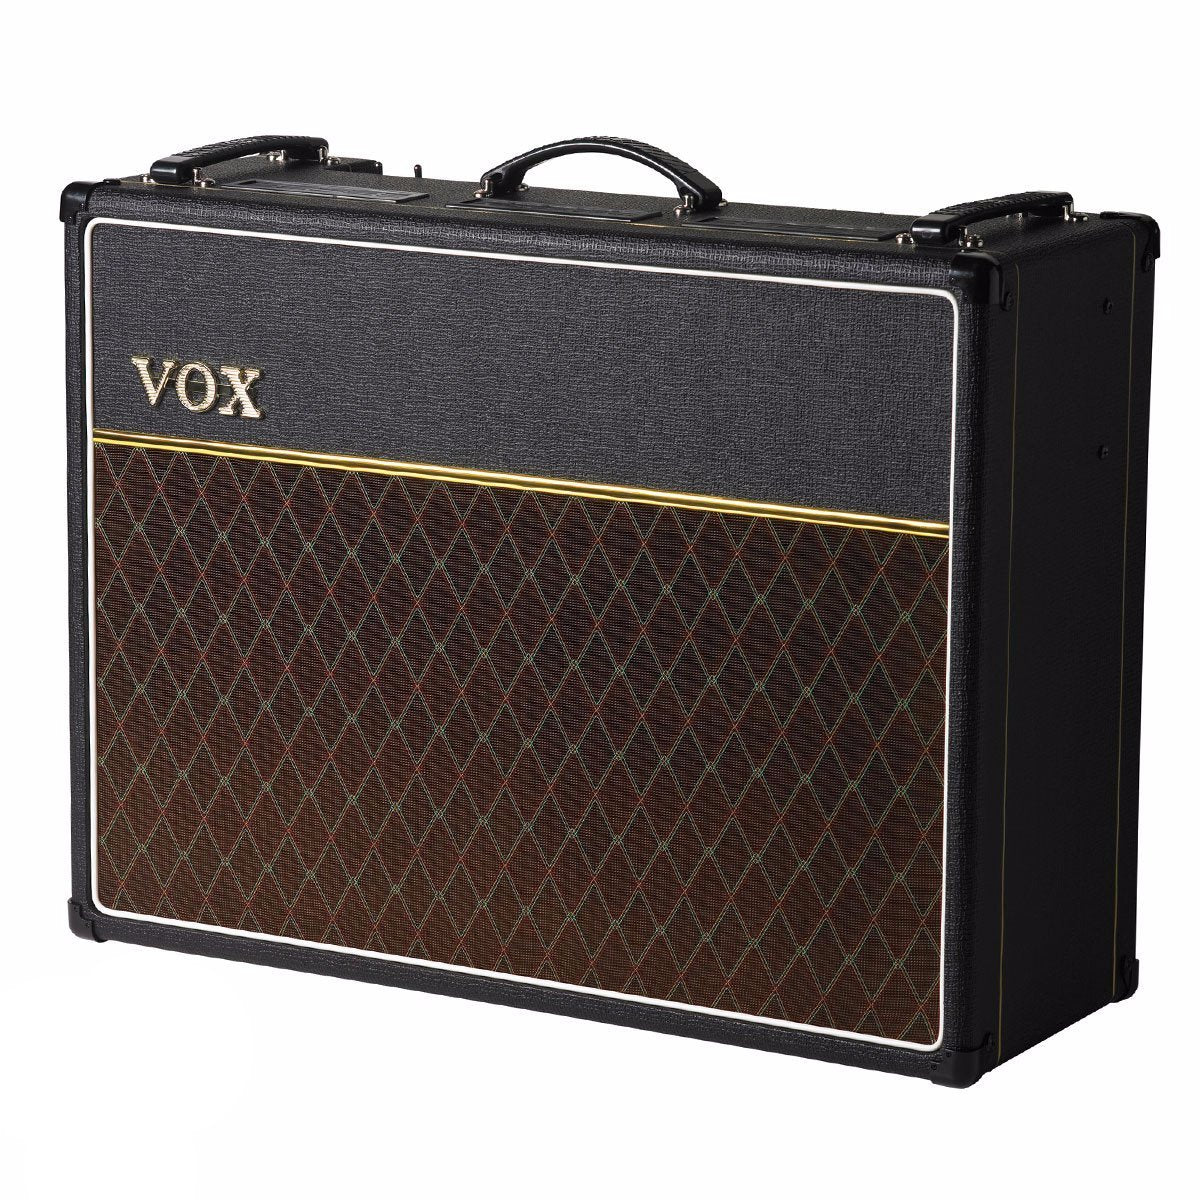 "VOX AC30C2 - Custom Series - 30-watt 2 x 12"""" combo with Celestion G12M Greenback speakers - Vintage Guitar Boutique - 2"